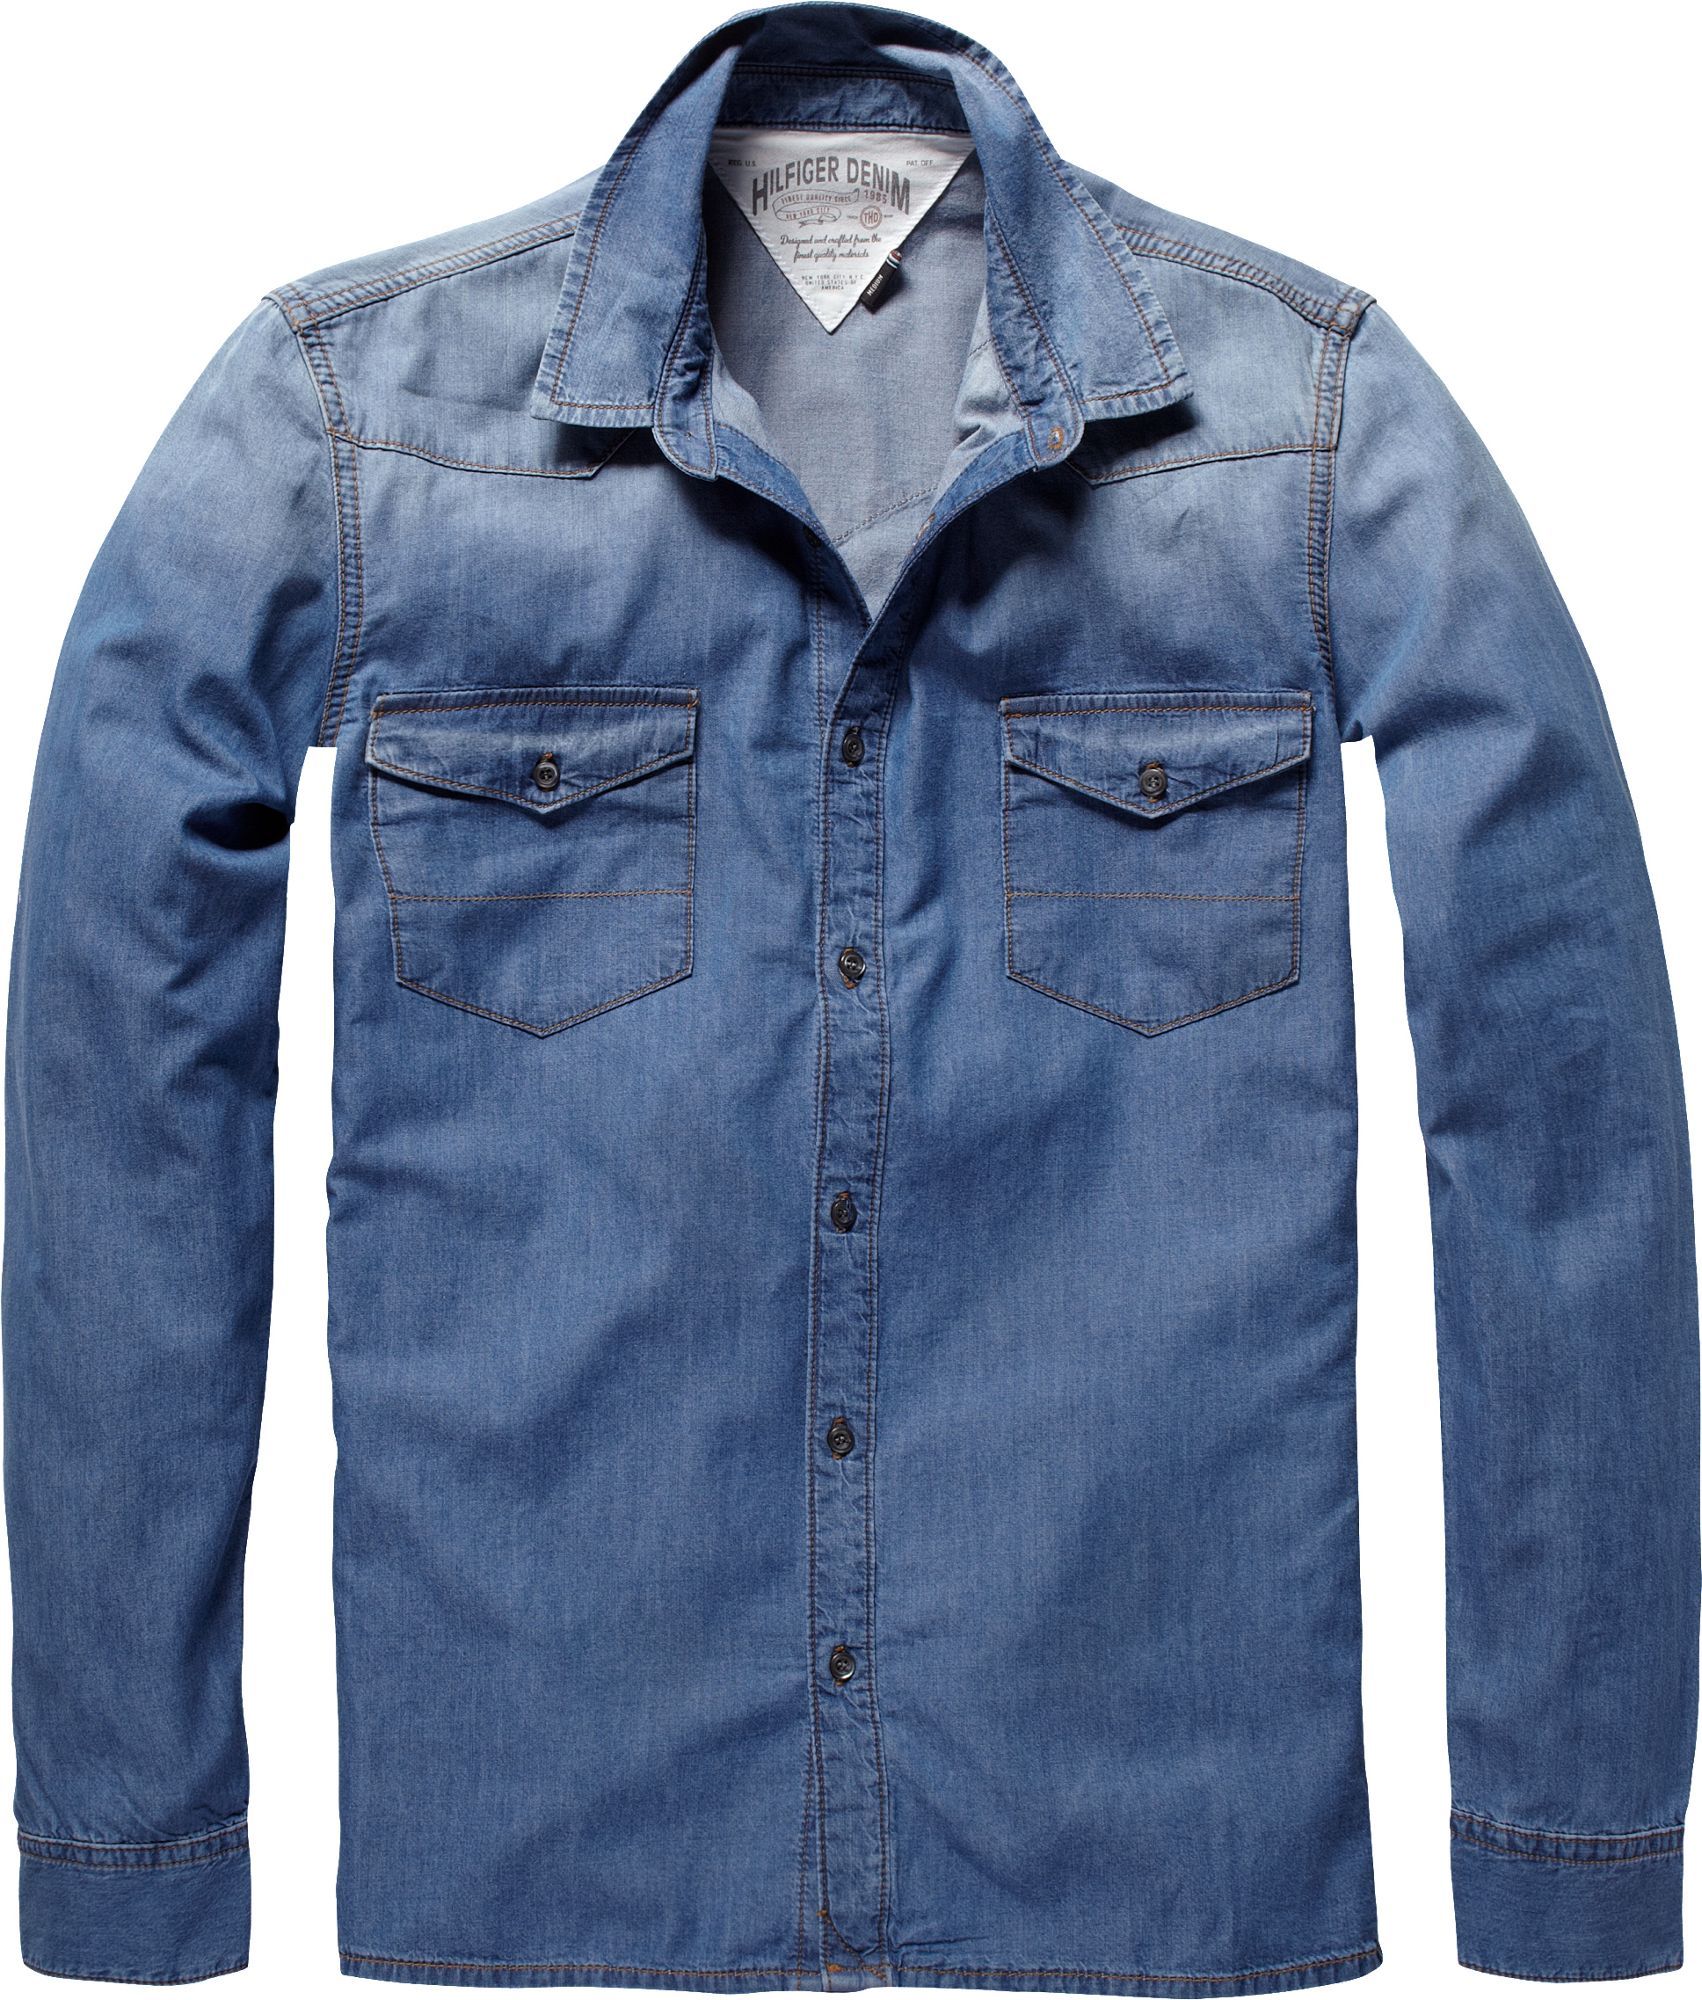 tommy hilfiger gratton faded denim shirt in blue for men. Black Bedroom Furniture Sets. Home Design Ideas